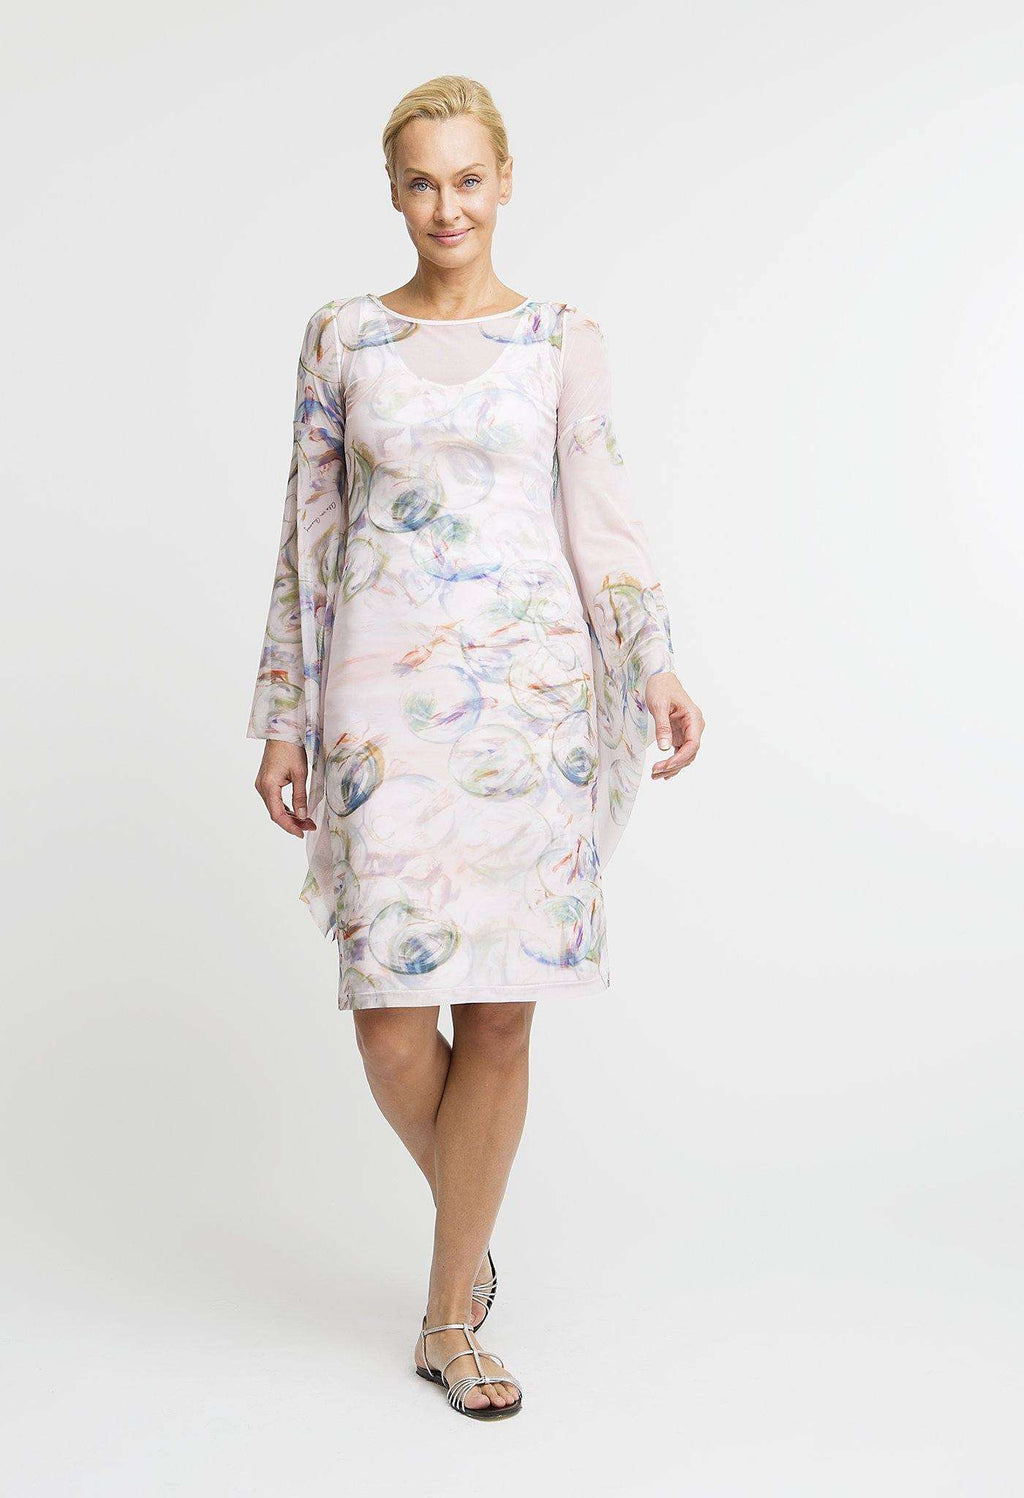 Emilie Short Dress in Nonsuch